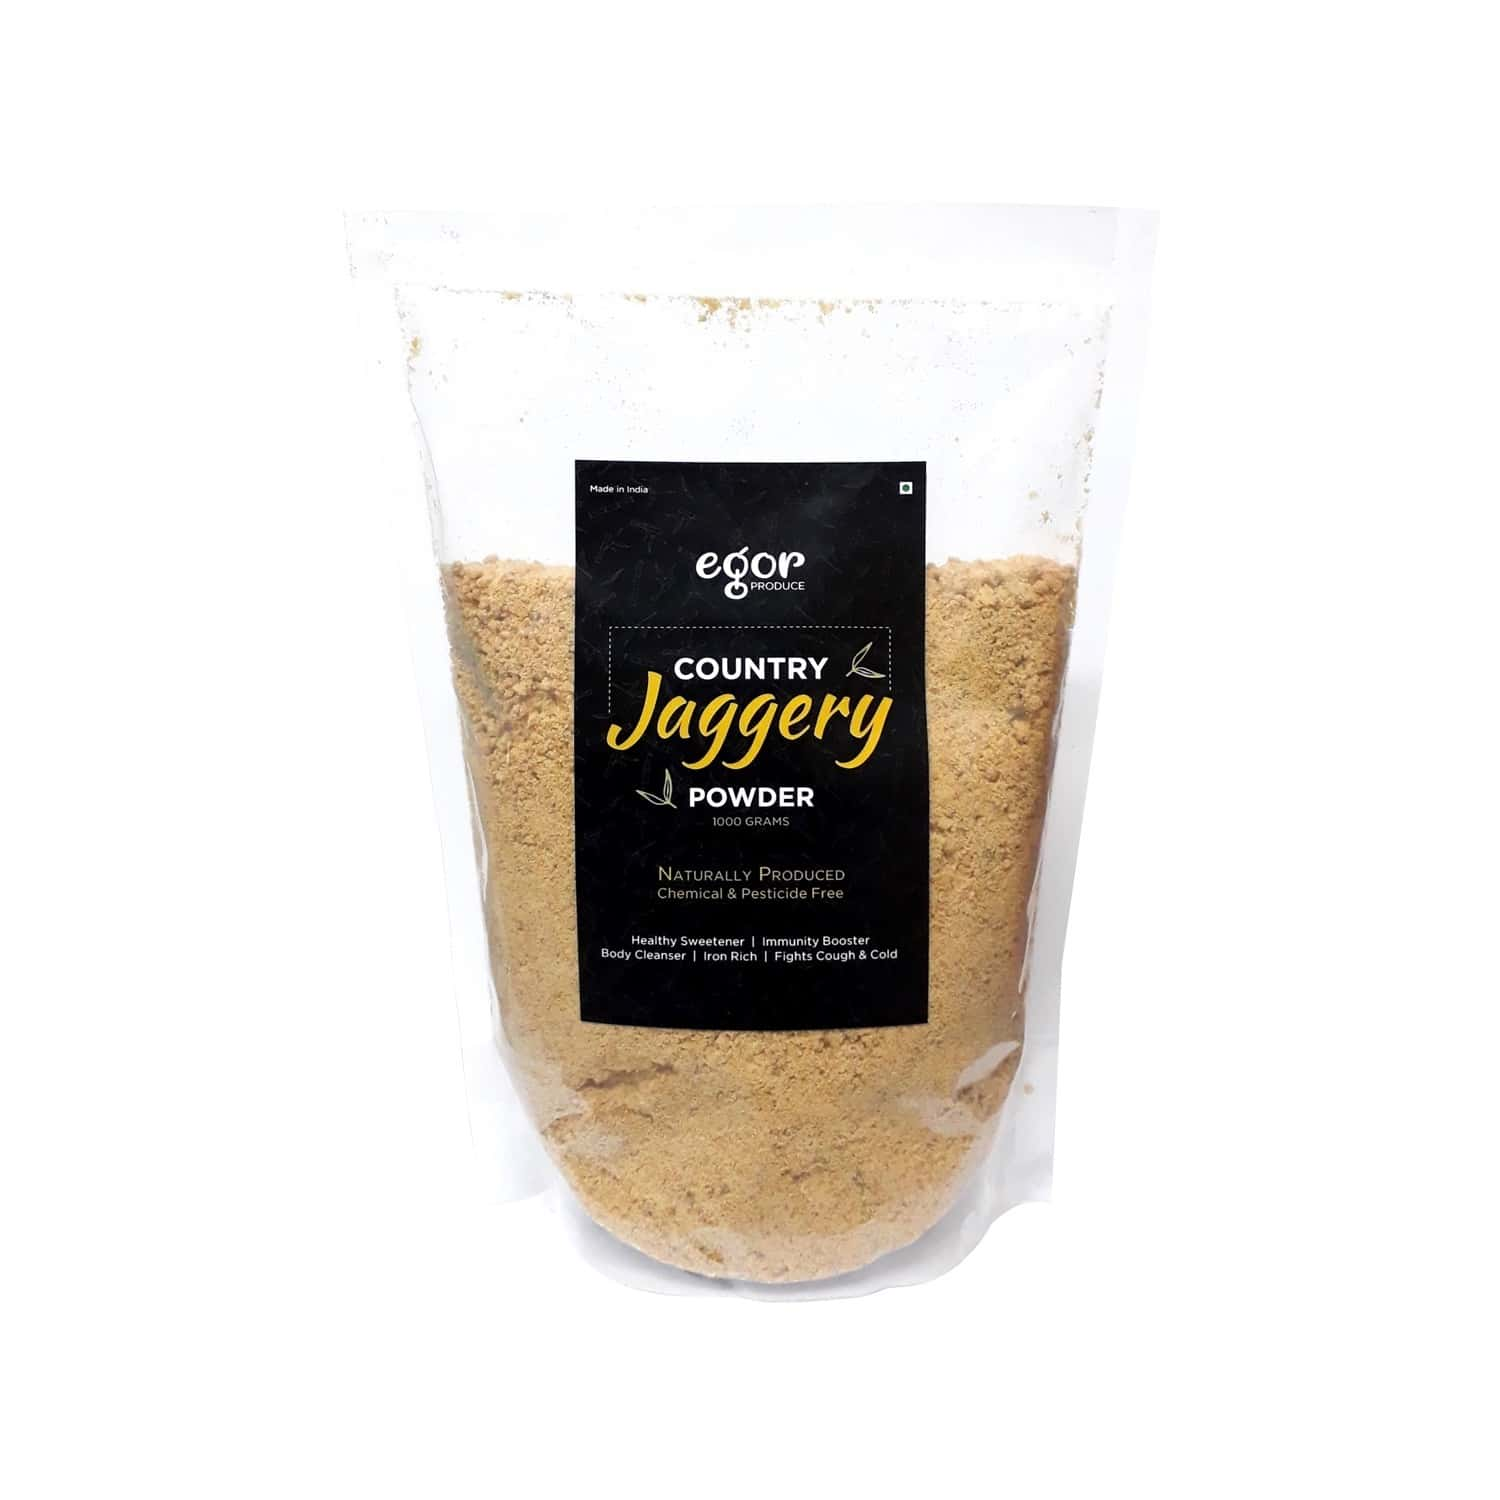 Egor For Babies & Family : Country Jaggery Powder, Organically Produced, Chemical Free, Healthy Sugar Substitute - 1kg